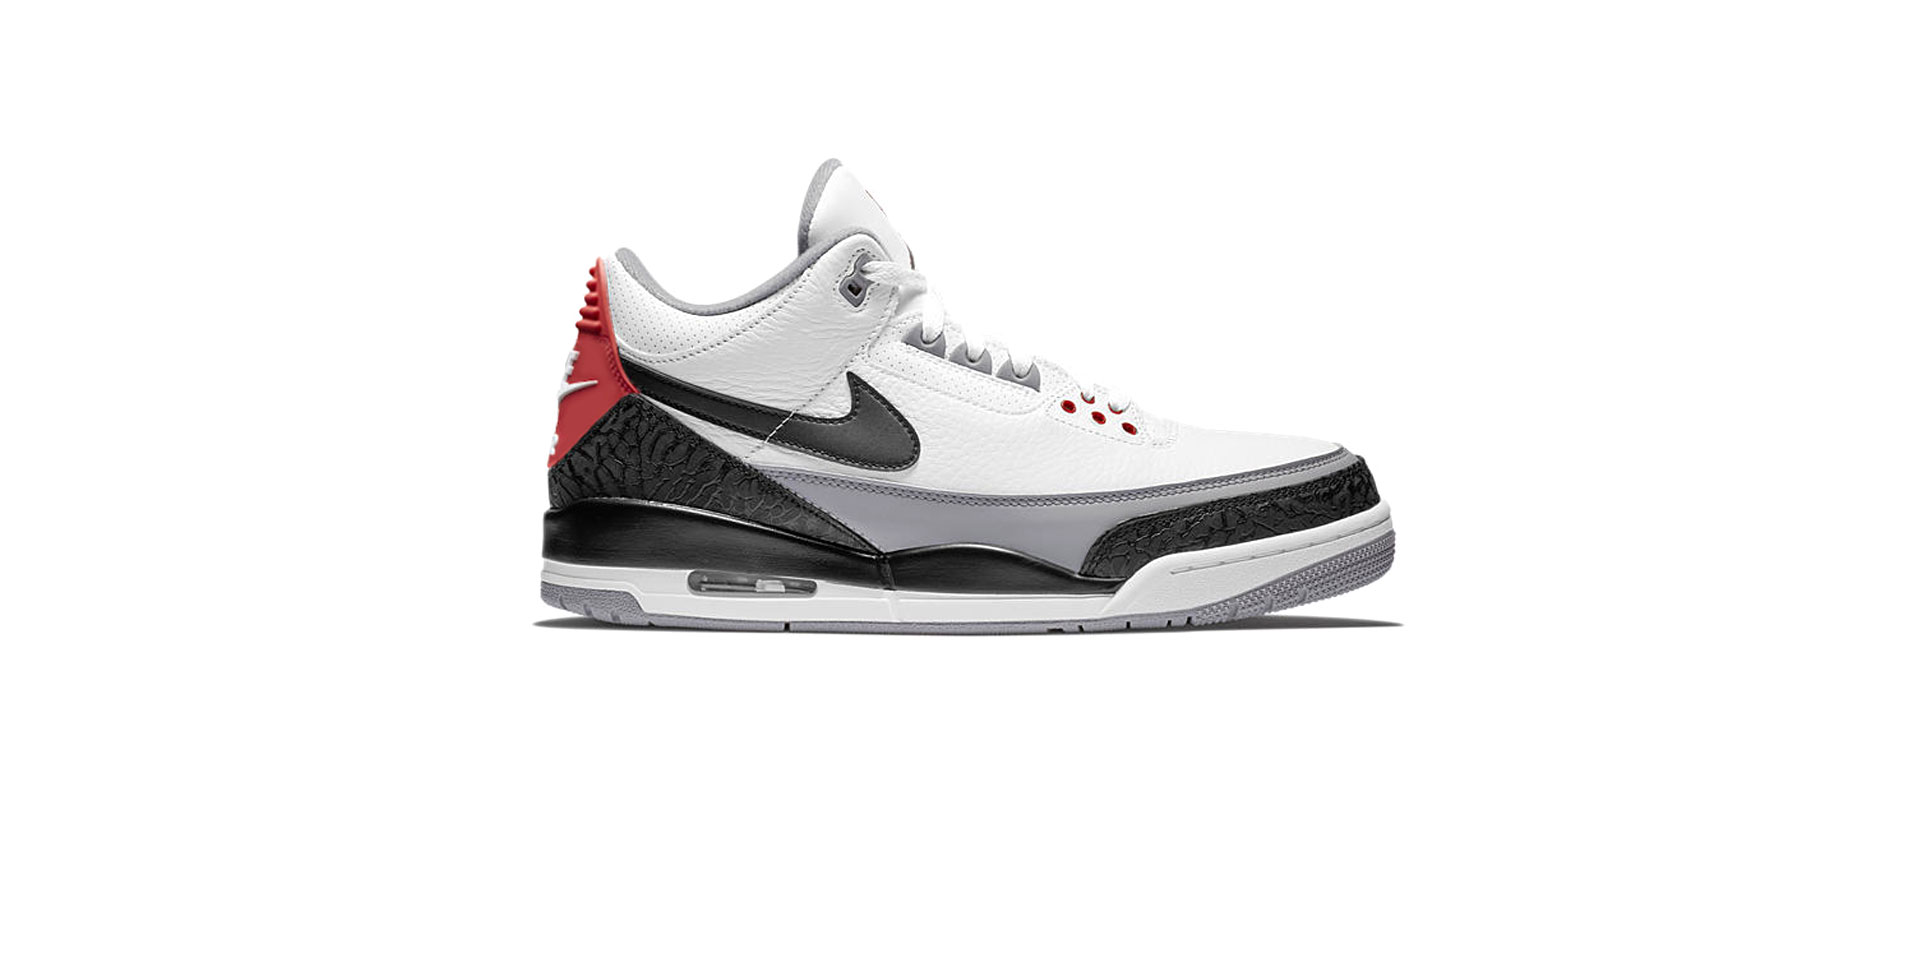 AIR JORDAN 3 RETRO TINKER NRG – WHITE/BLACK-FIRE RED-CEMENT GREY